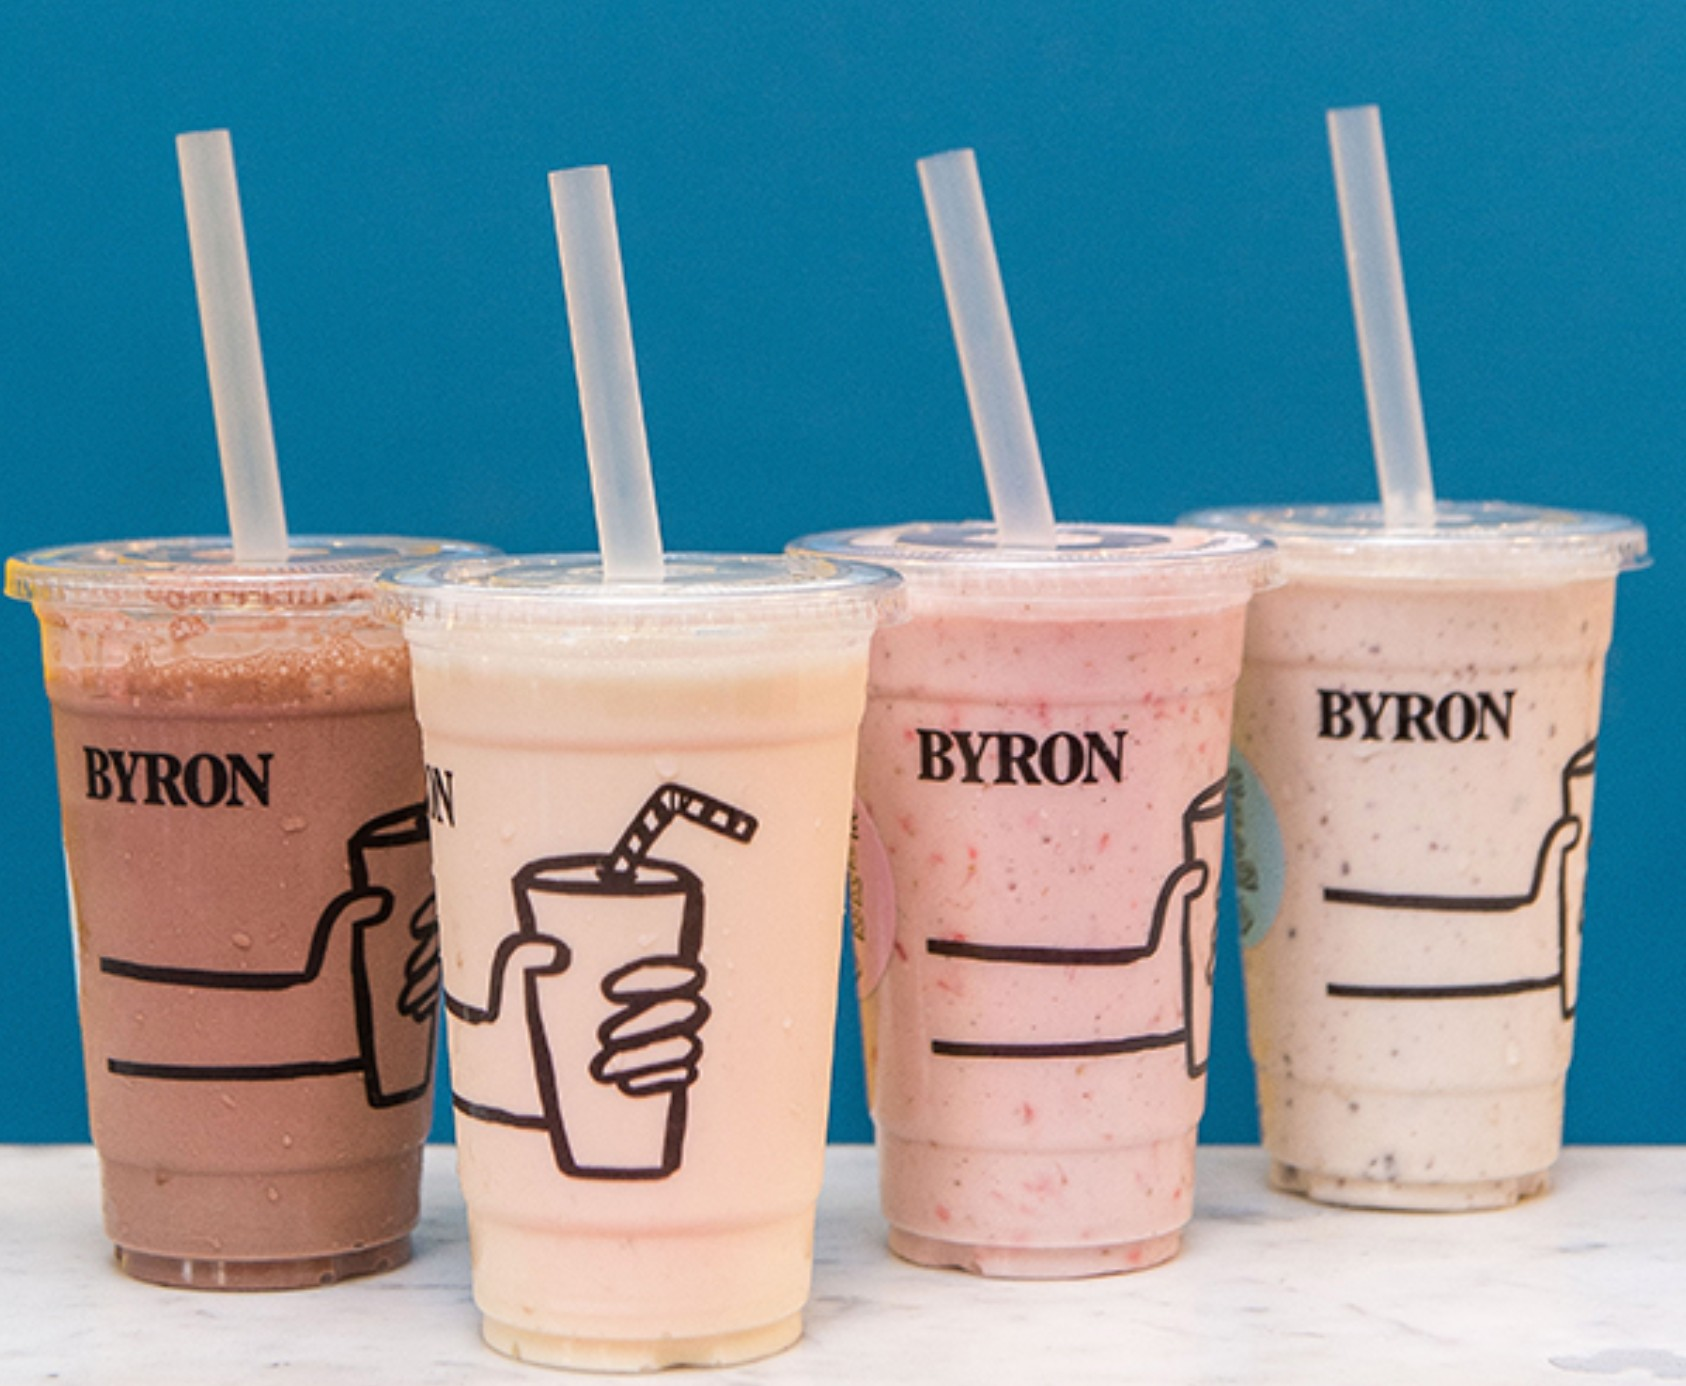 vegan milkshakes from Byron hamburgers